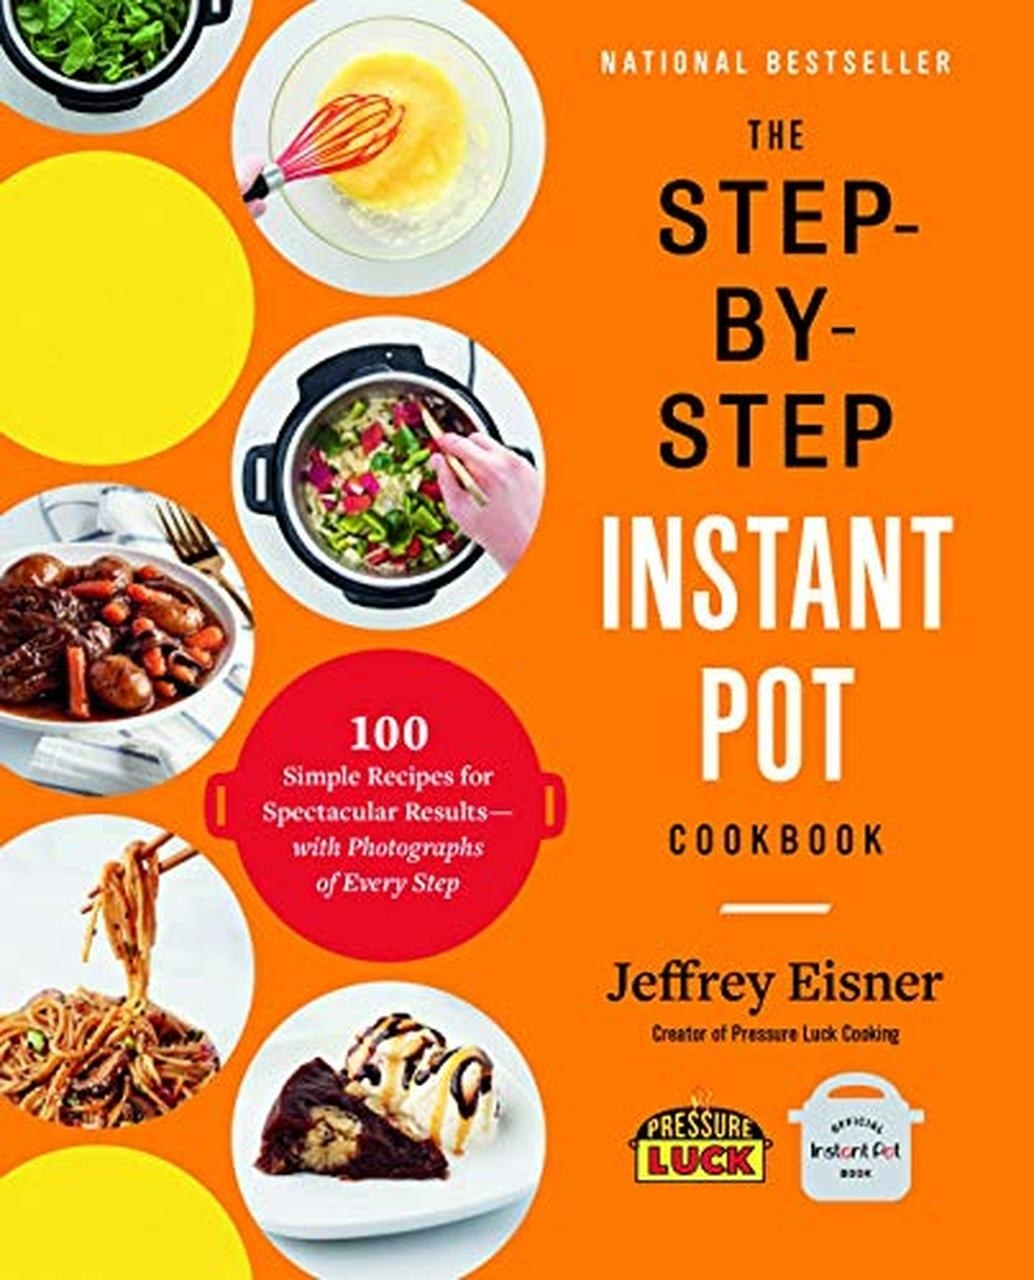 The cover of The Step-by-Step Instant Pot Cookbook by Jeffrey Eisner